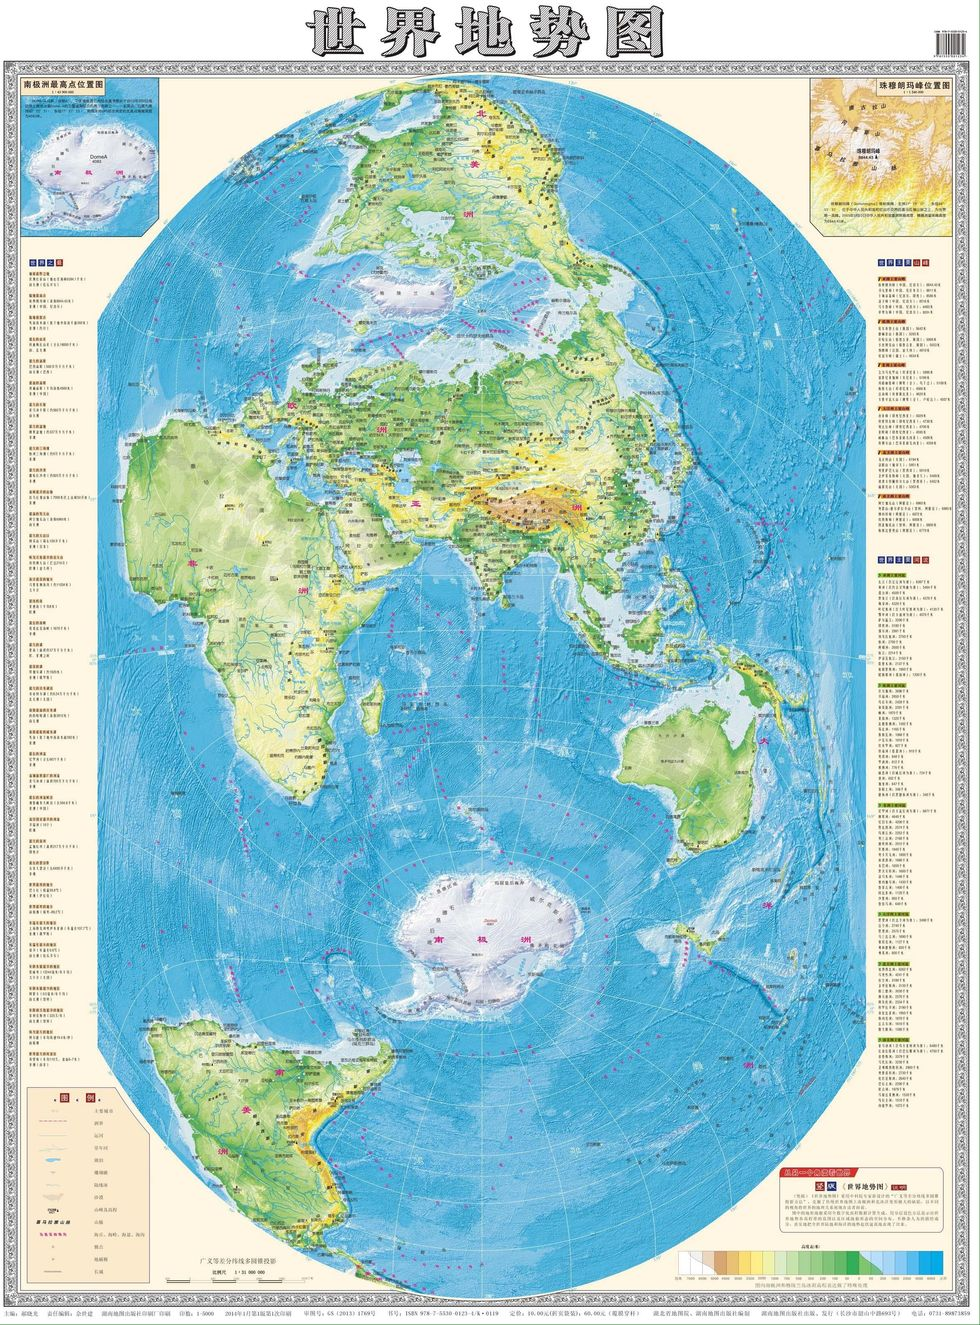 Chinese vertical world map focuses on Arctic - Big Think